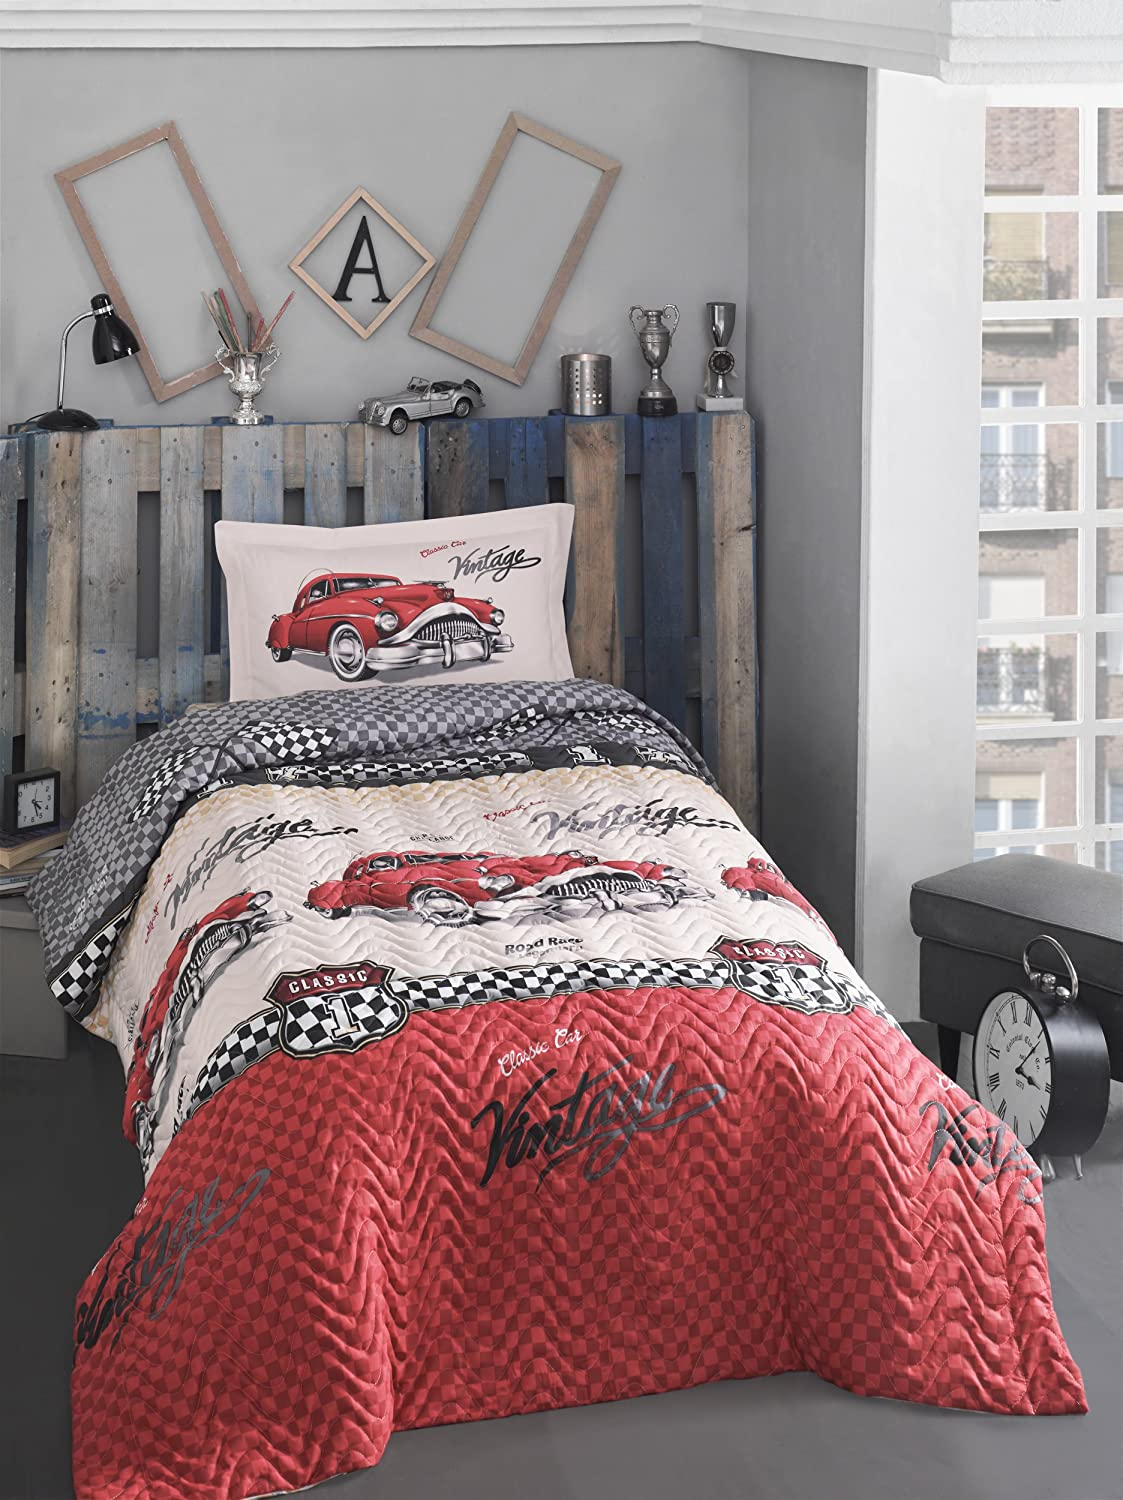 Classic Vintage Cars Bedding Set, 100% Cotton Full/Twin Size Multifunctional Four Season Boys Bedding Set, Quilted Bedspread/Duvet Cover Set, 3 PCS, Red& White Bekata